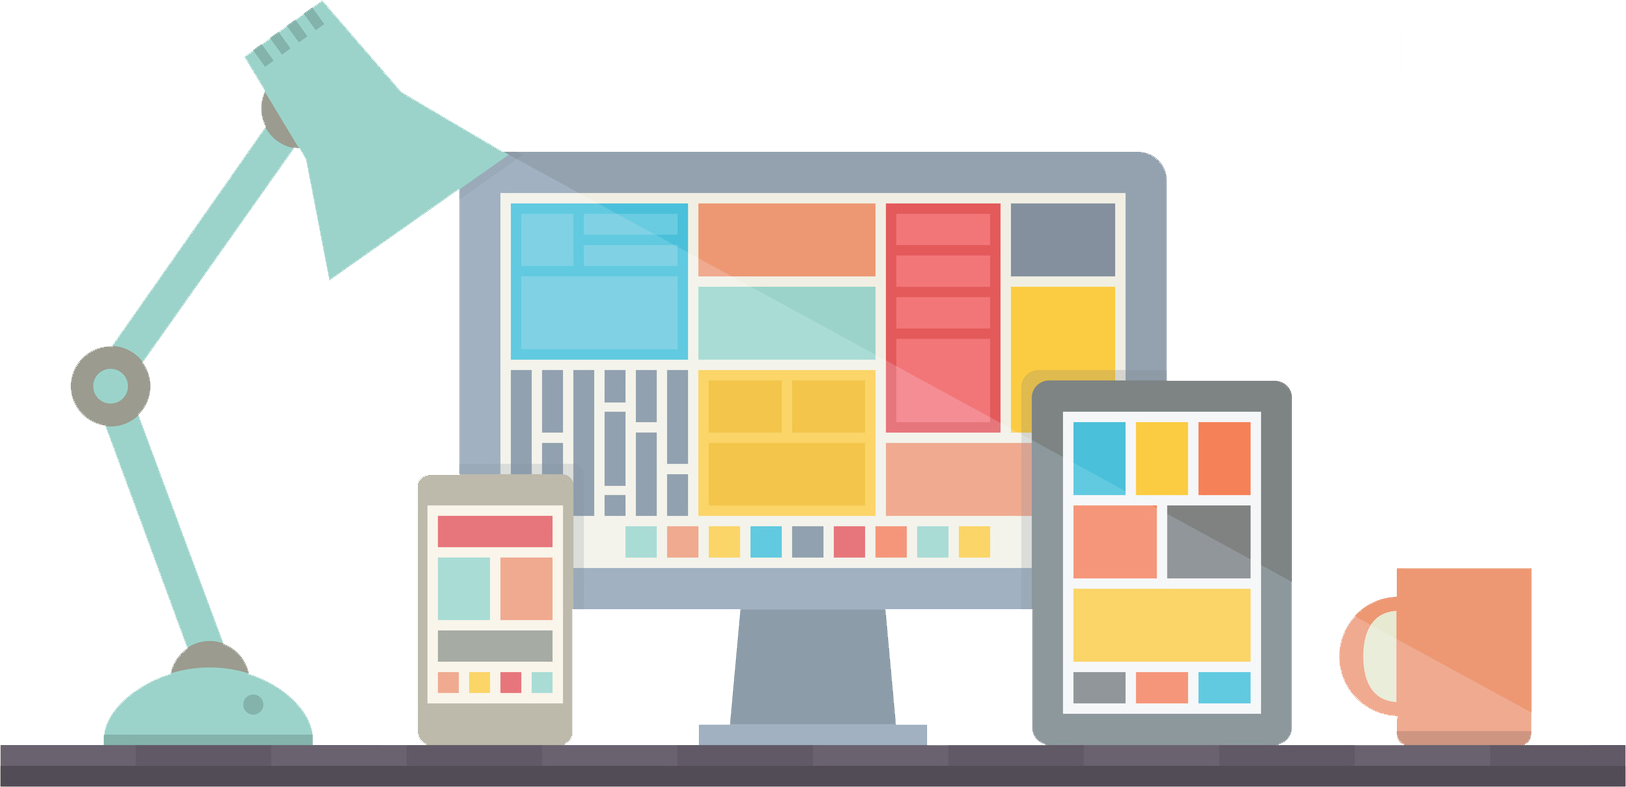 Bootstrap Your Online Business Without a Web Designer